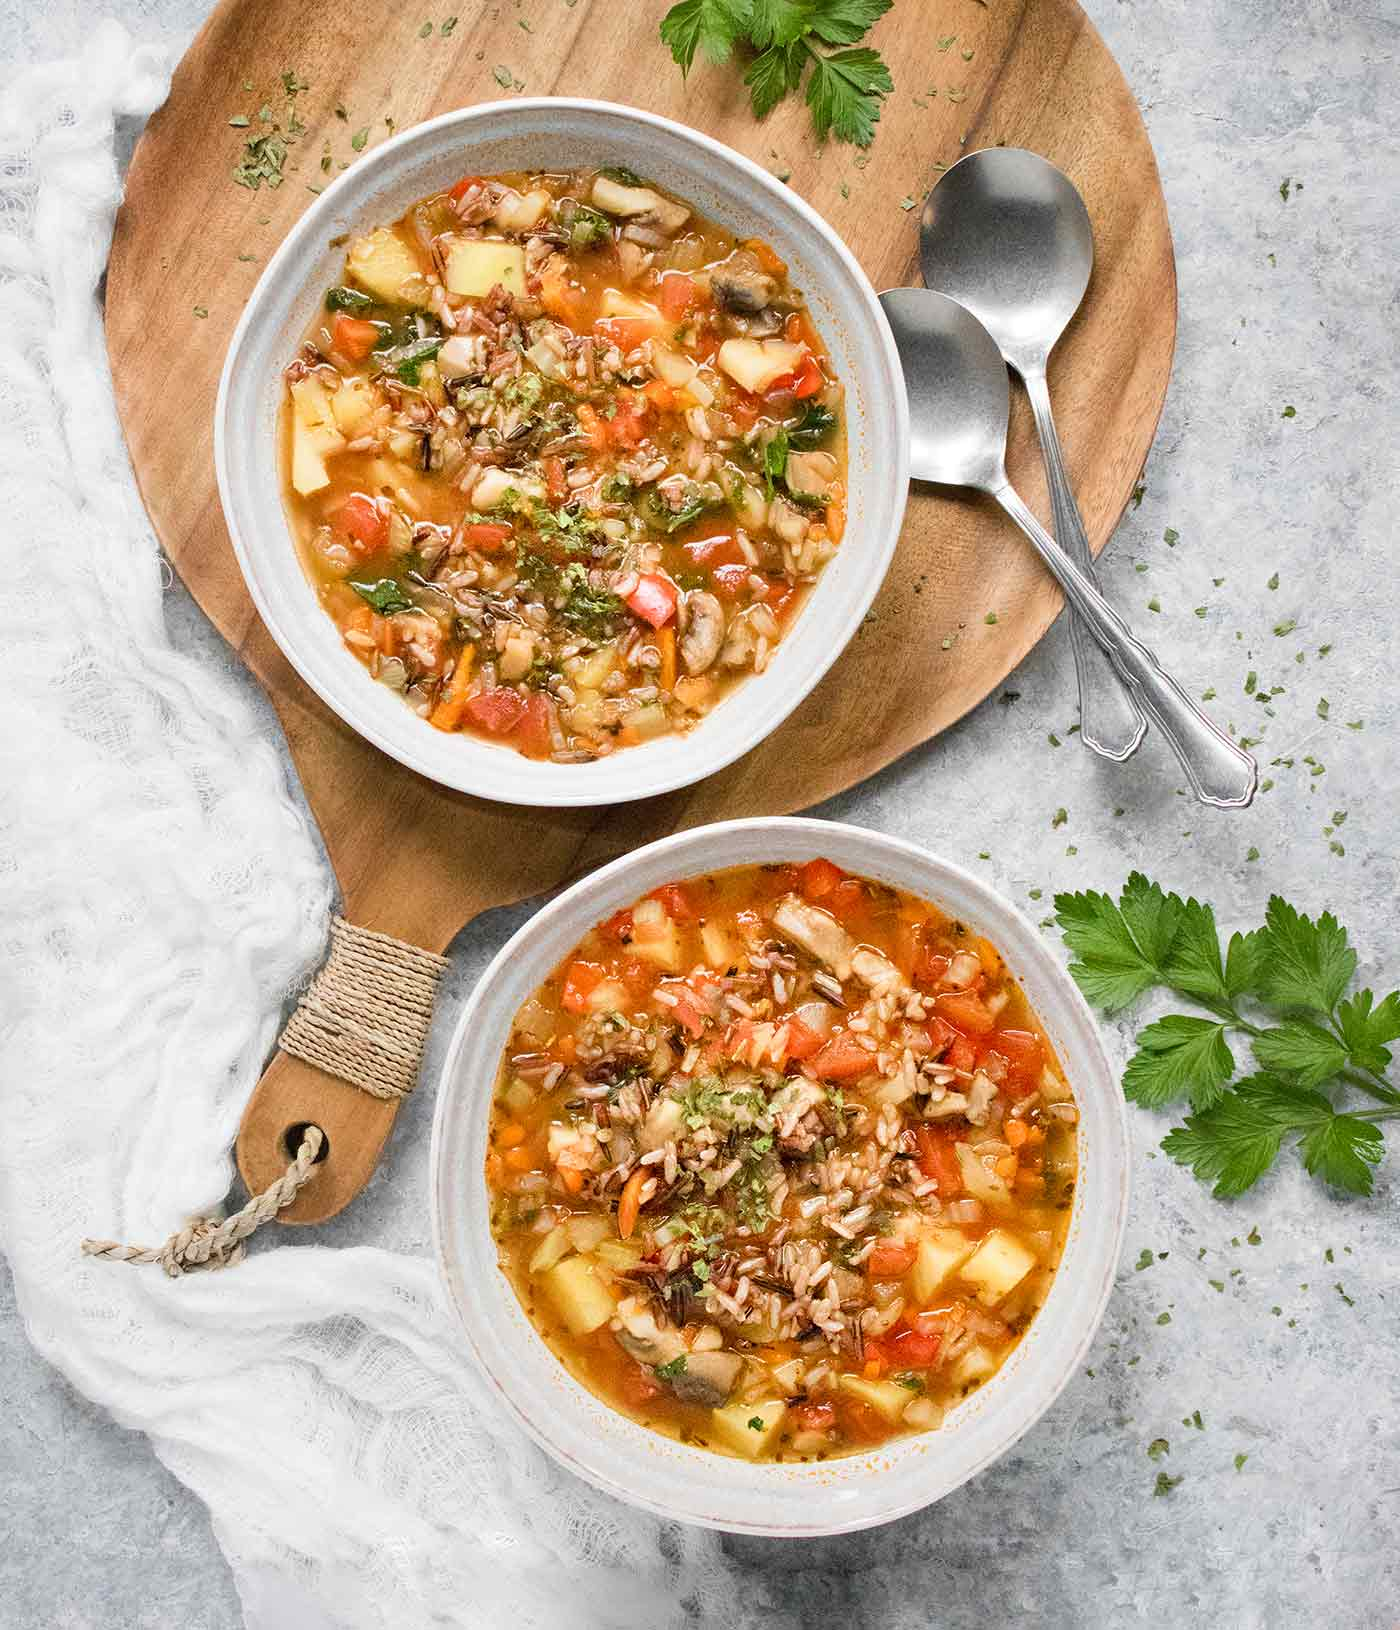 Hearty Vegetable Wild Rice Soup from Soup Addict